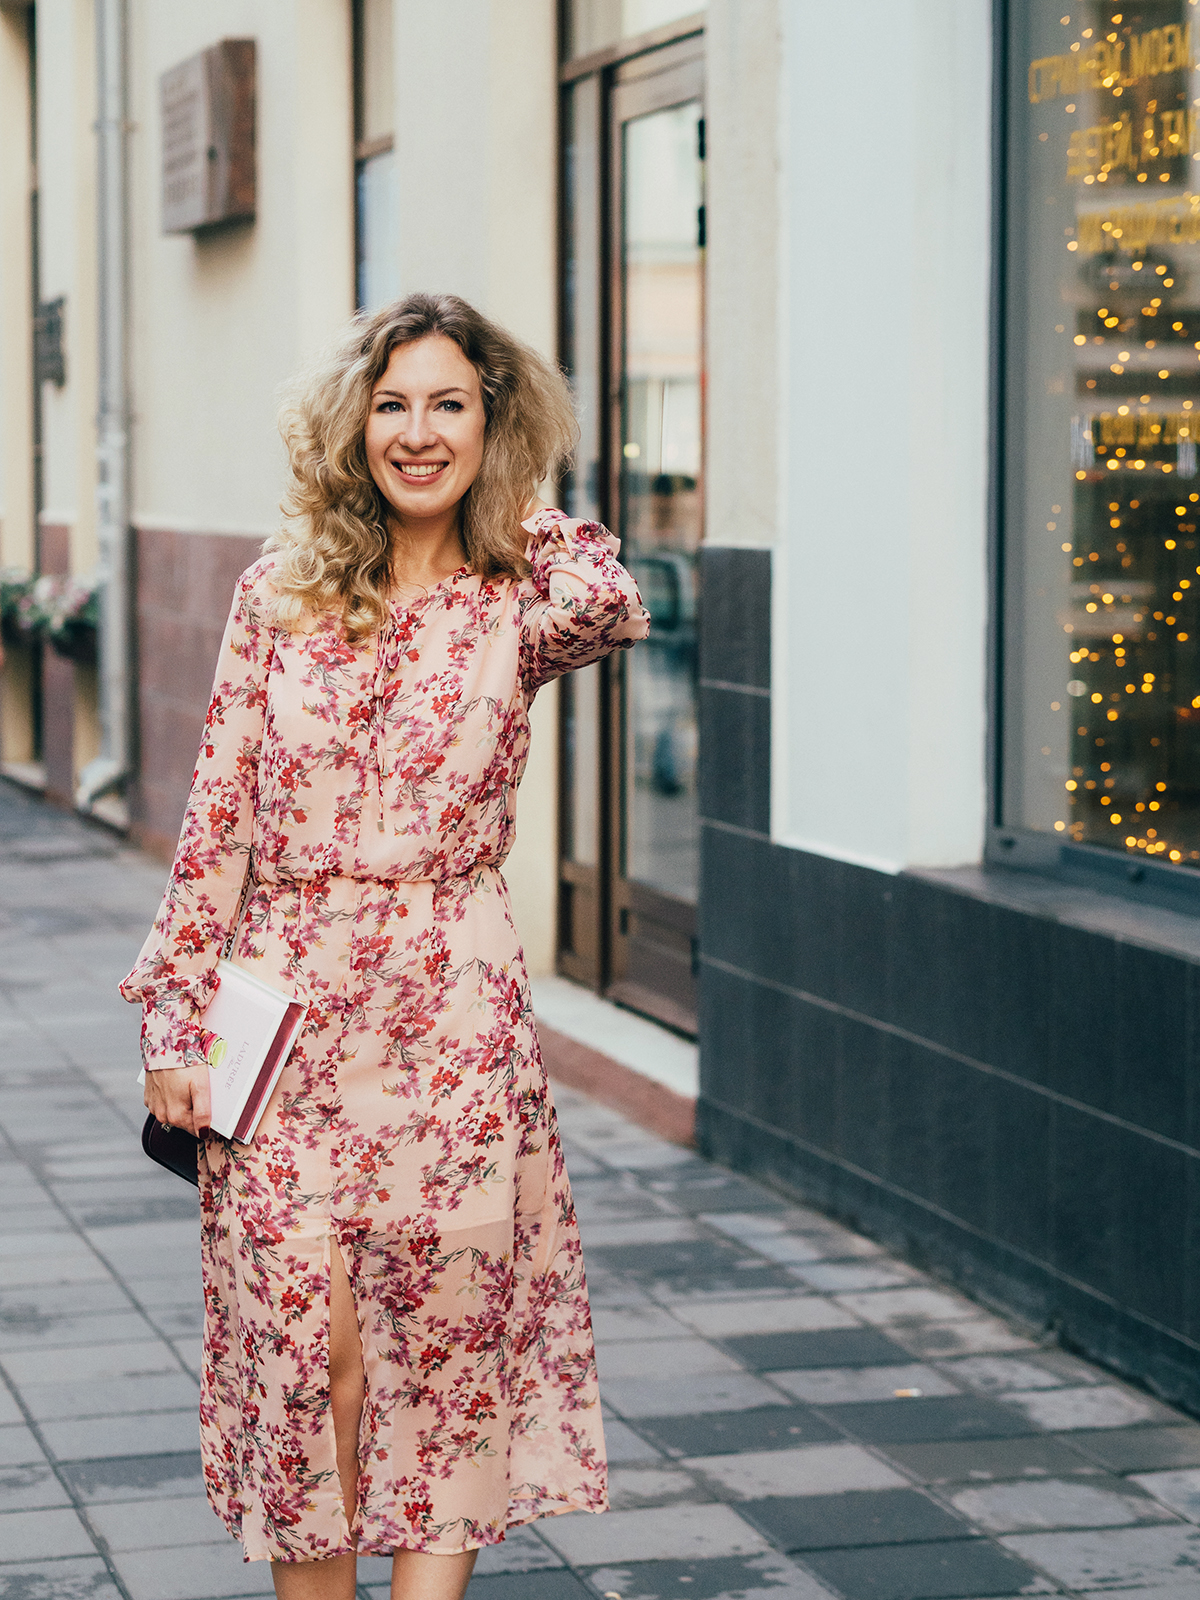 margarita_maslova_pink_floral_dress_laduree_moscow_marsala_heels